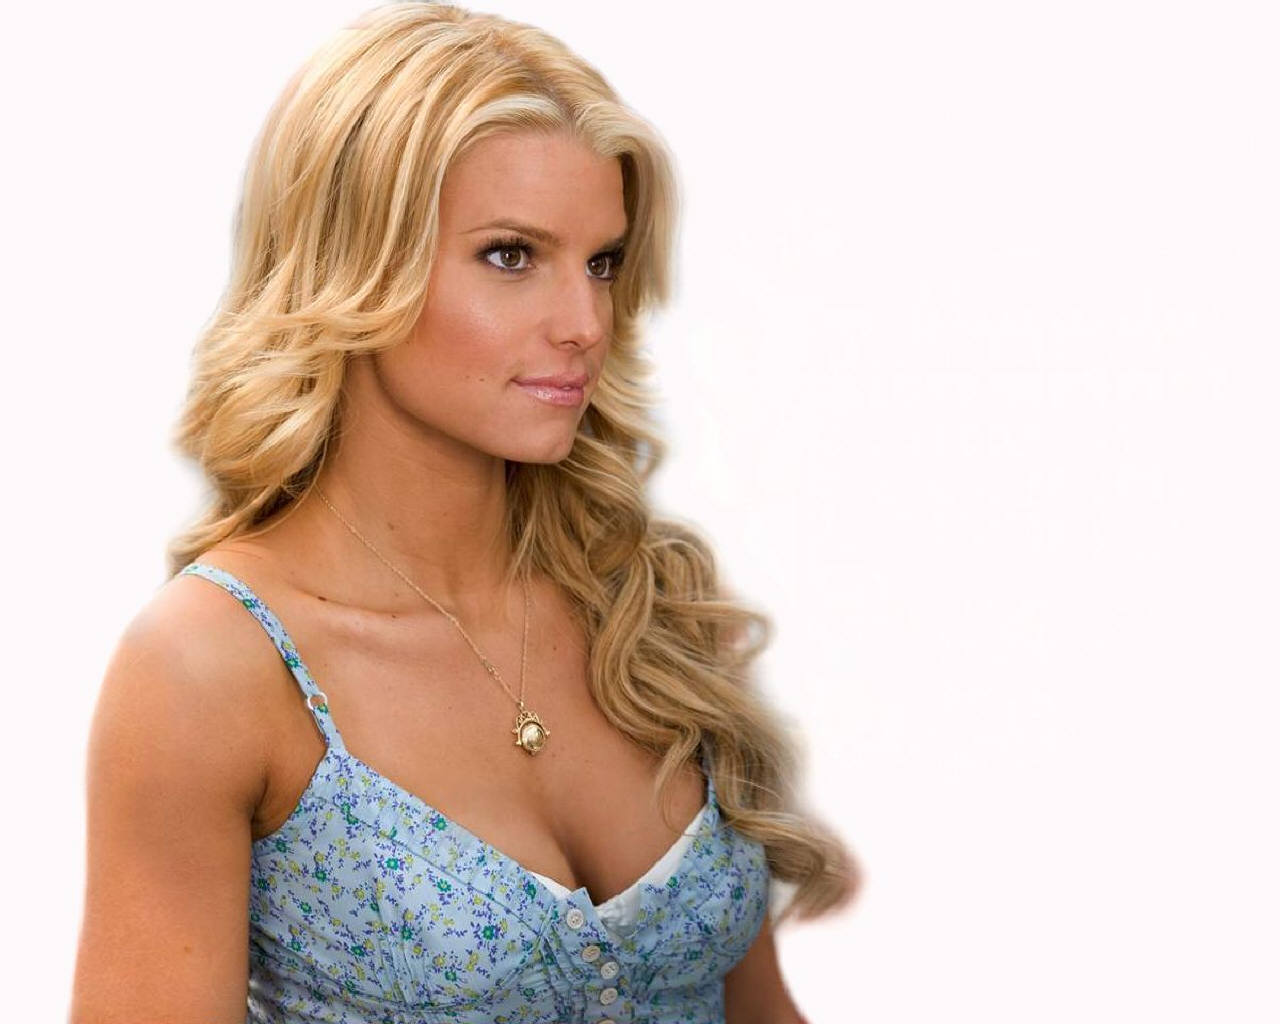 Jessica simpson hairstyles new women haircuts - Jessica Simpson Hot Pictures To Pin On Pinterest